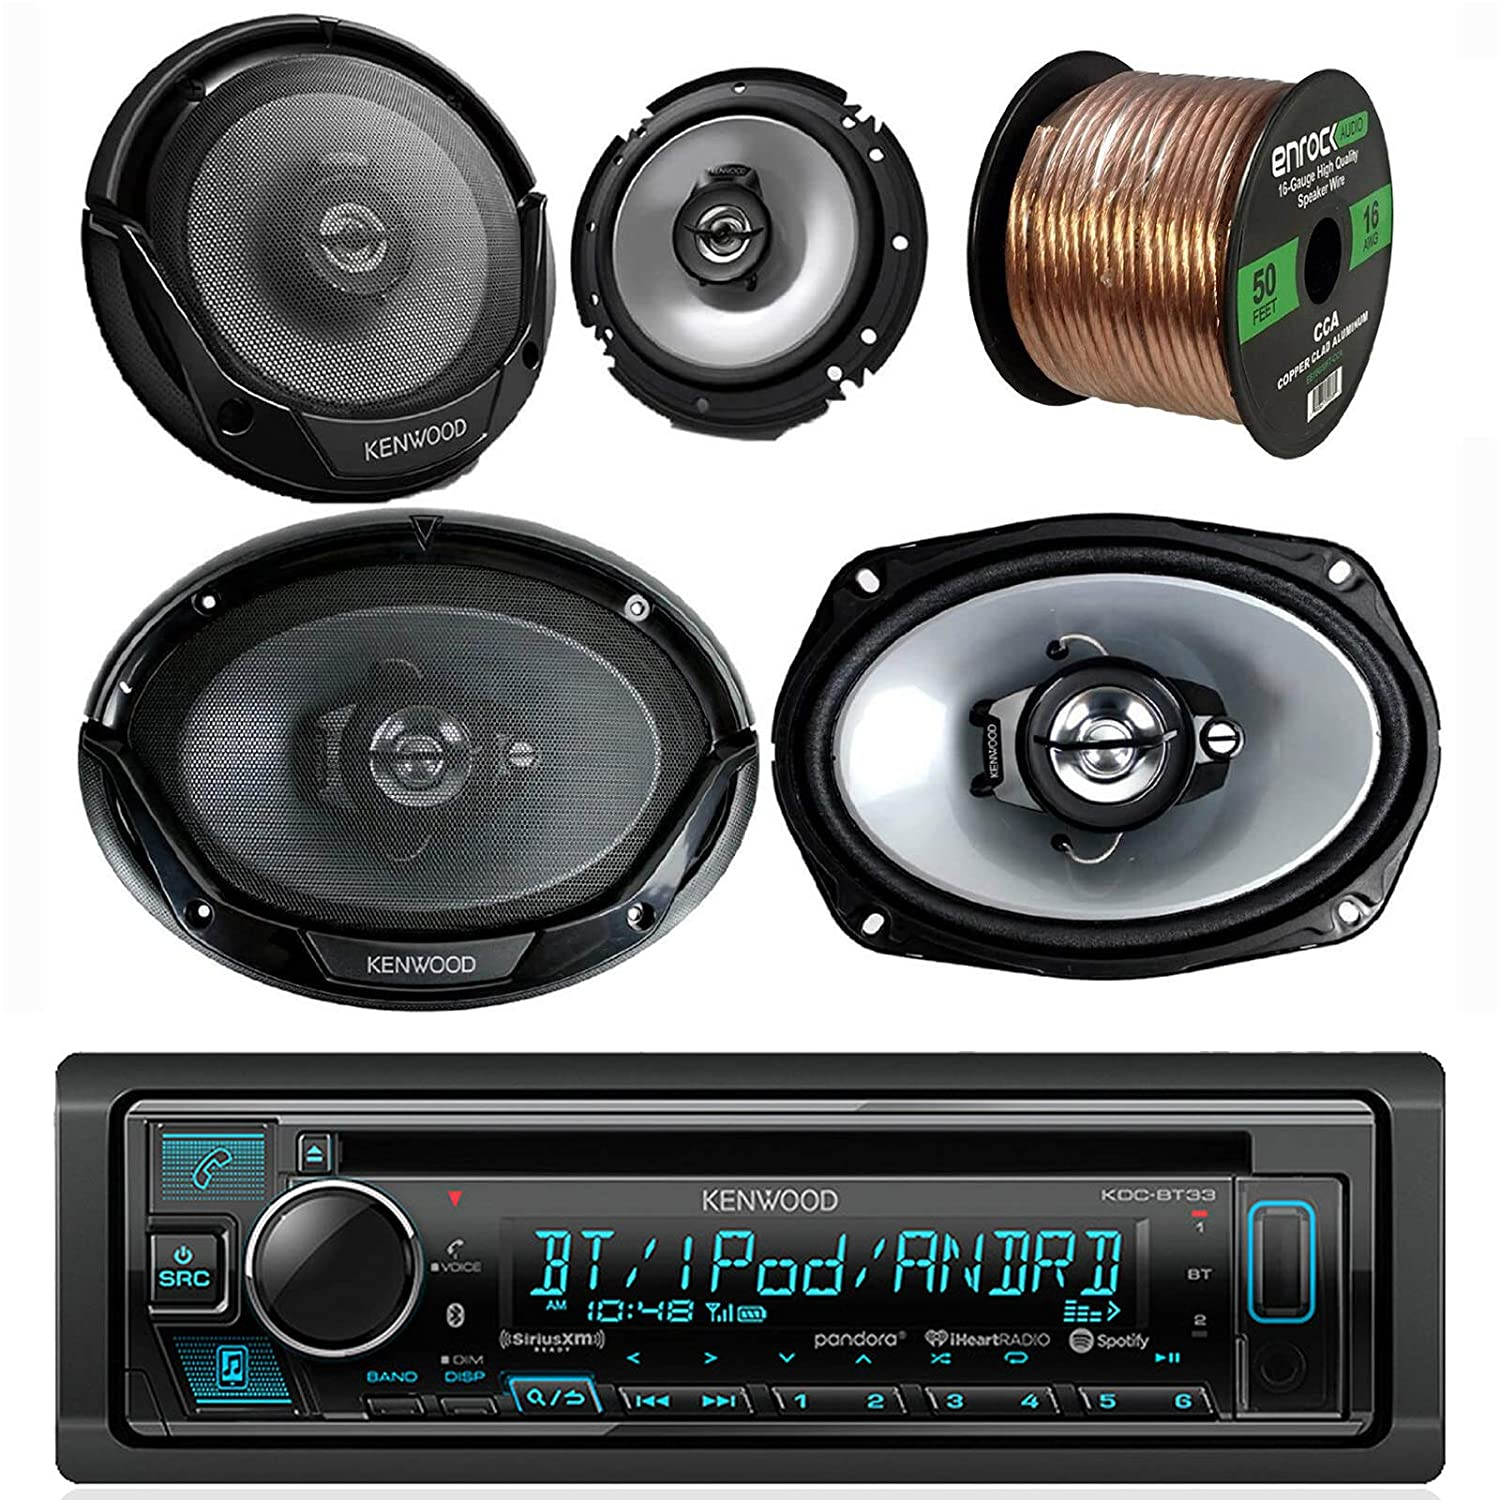 Kenwood Receiver With Two 6x9-Inch Speakers